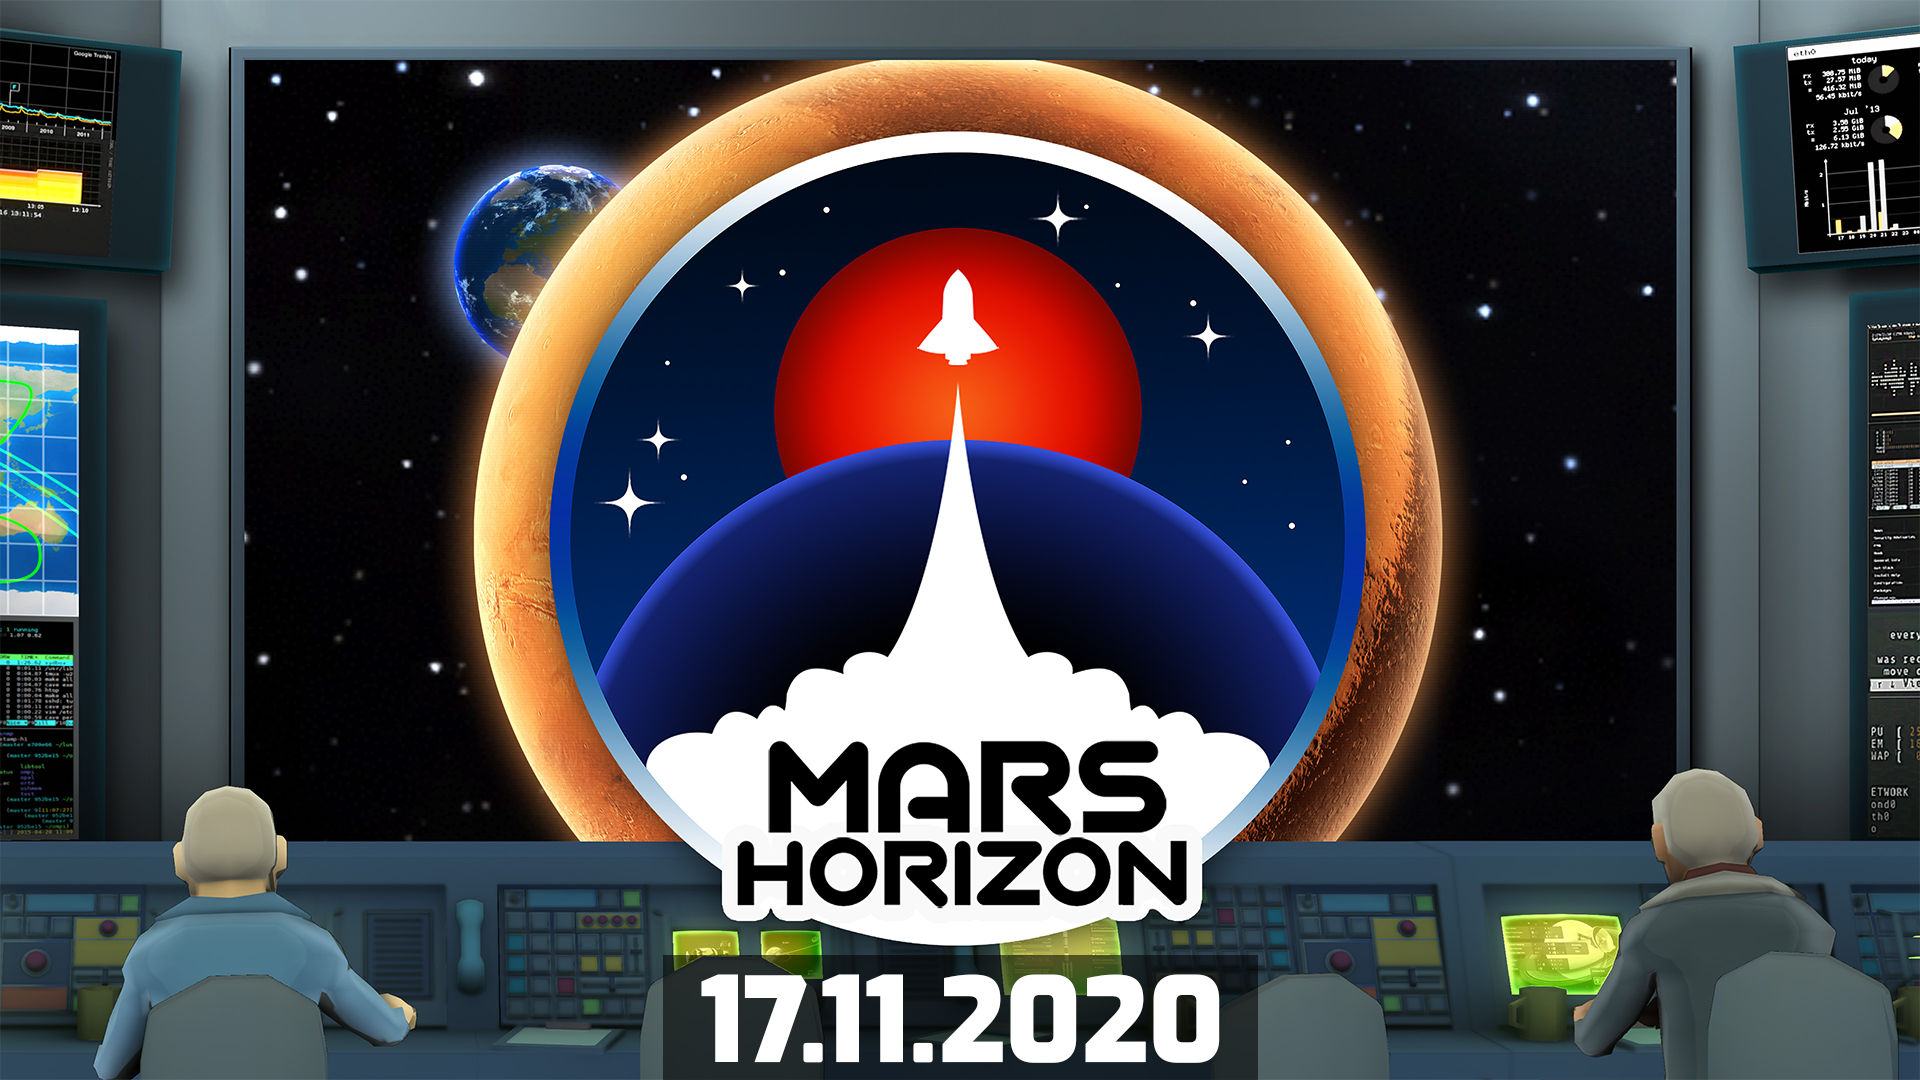 We have lift off! Mars Horizon release date announcement 👨‍🚀